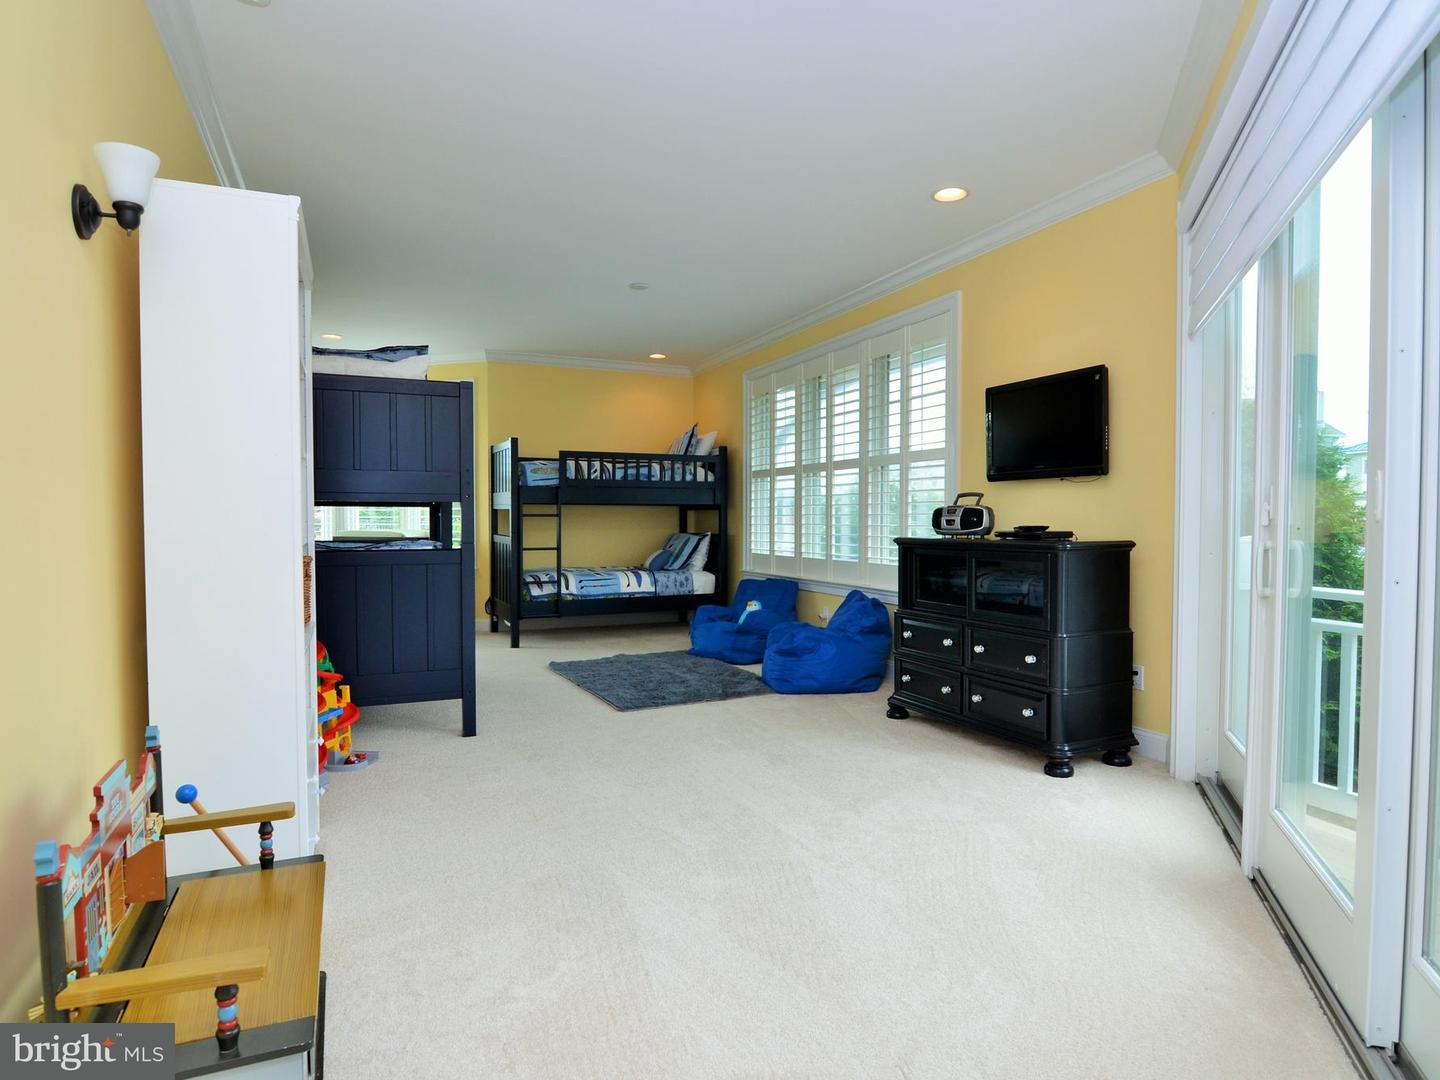 1002293530-300500807518-2018-09-25-15-08-25 31 Hall Ave | Rehoboth Beach, De Real Estate For Sale | MLS# 1002293530  - Suzanne Macnab